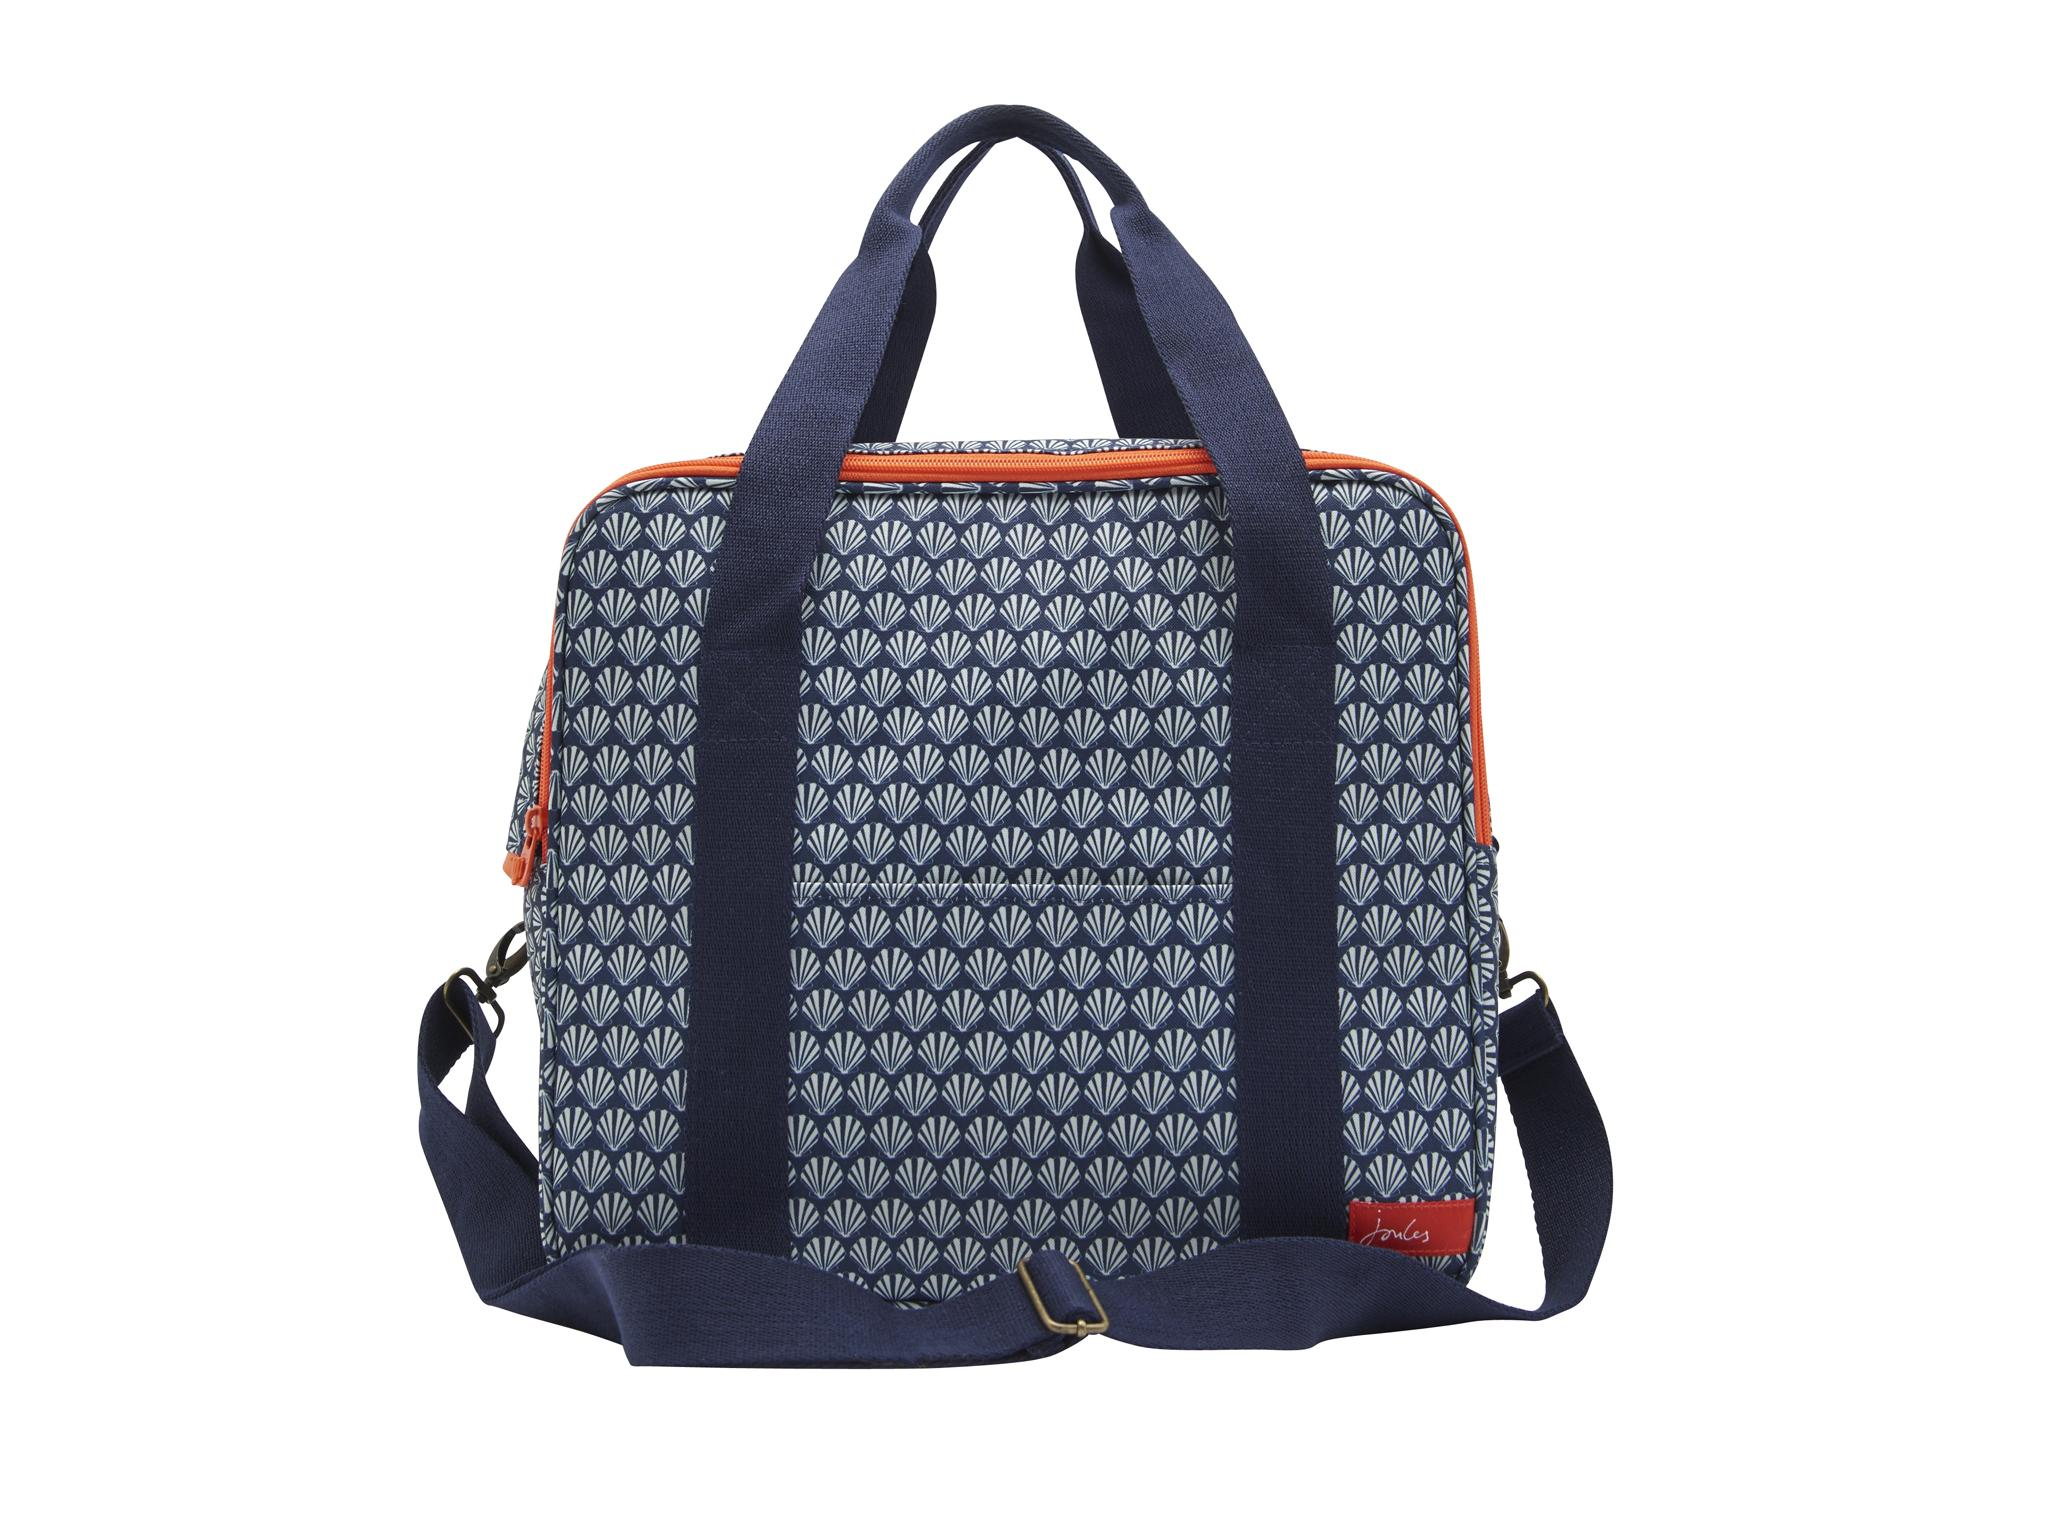 5946e65fd39d Available in two chic designs – grey floral or a navy shell – this  family-picnic sized bag is well-made